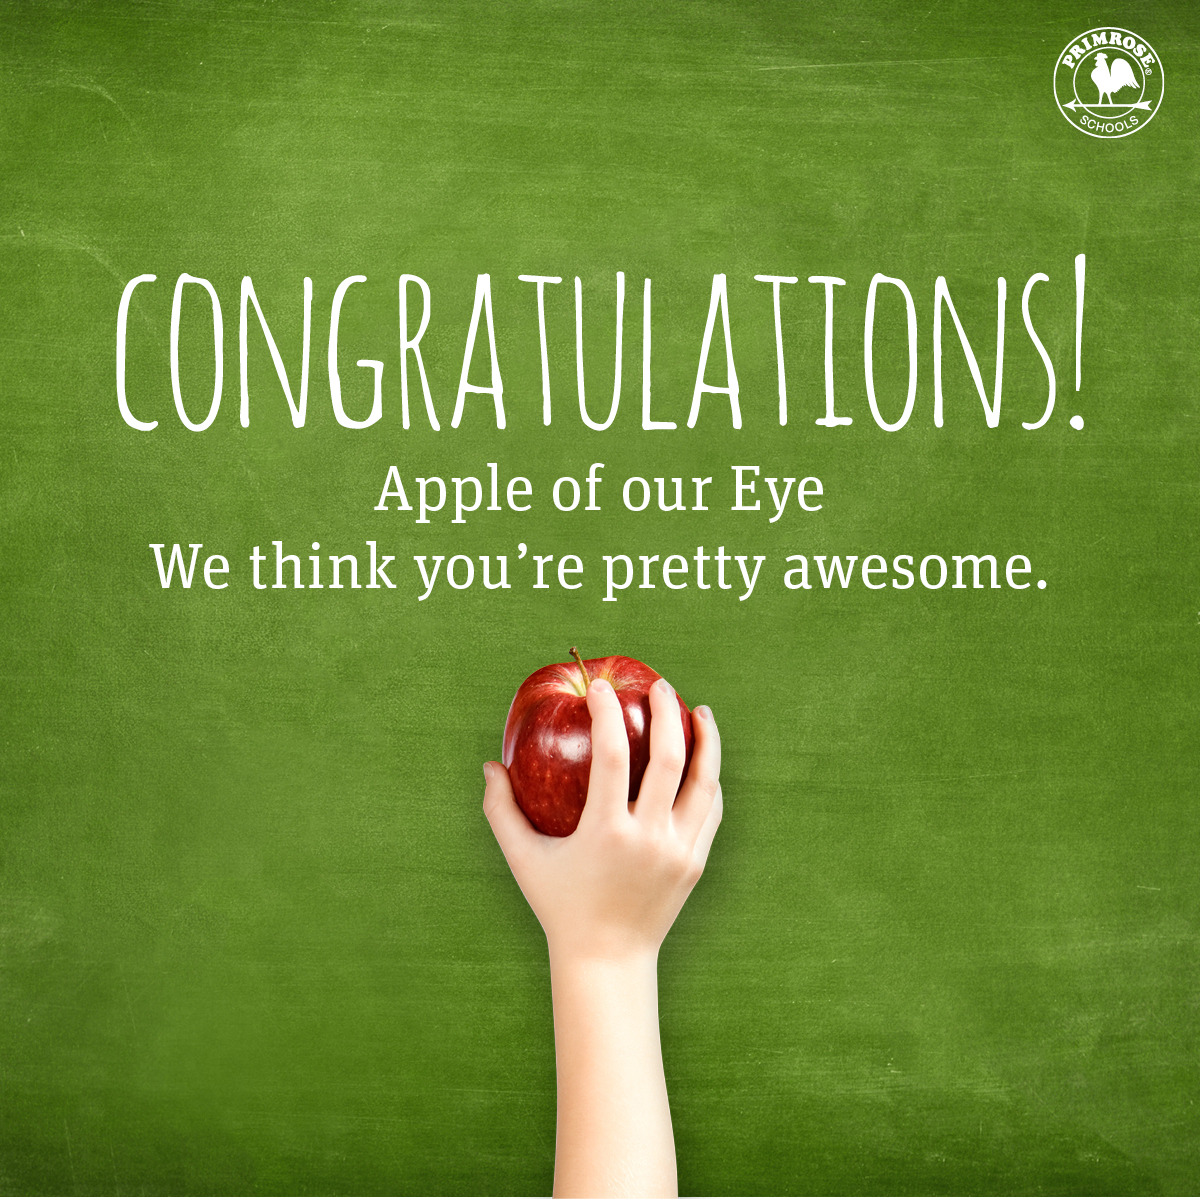 Poster congratulating Ms. Andrea Morgan as this month's apple of our eye